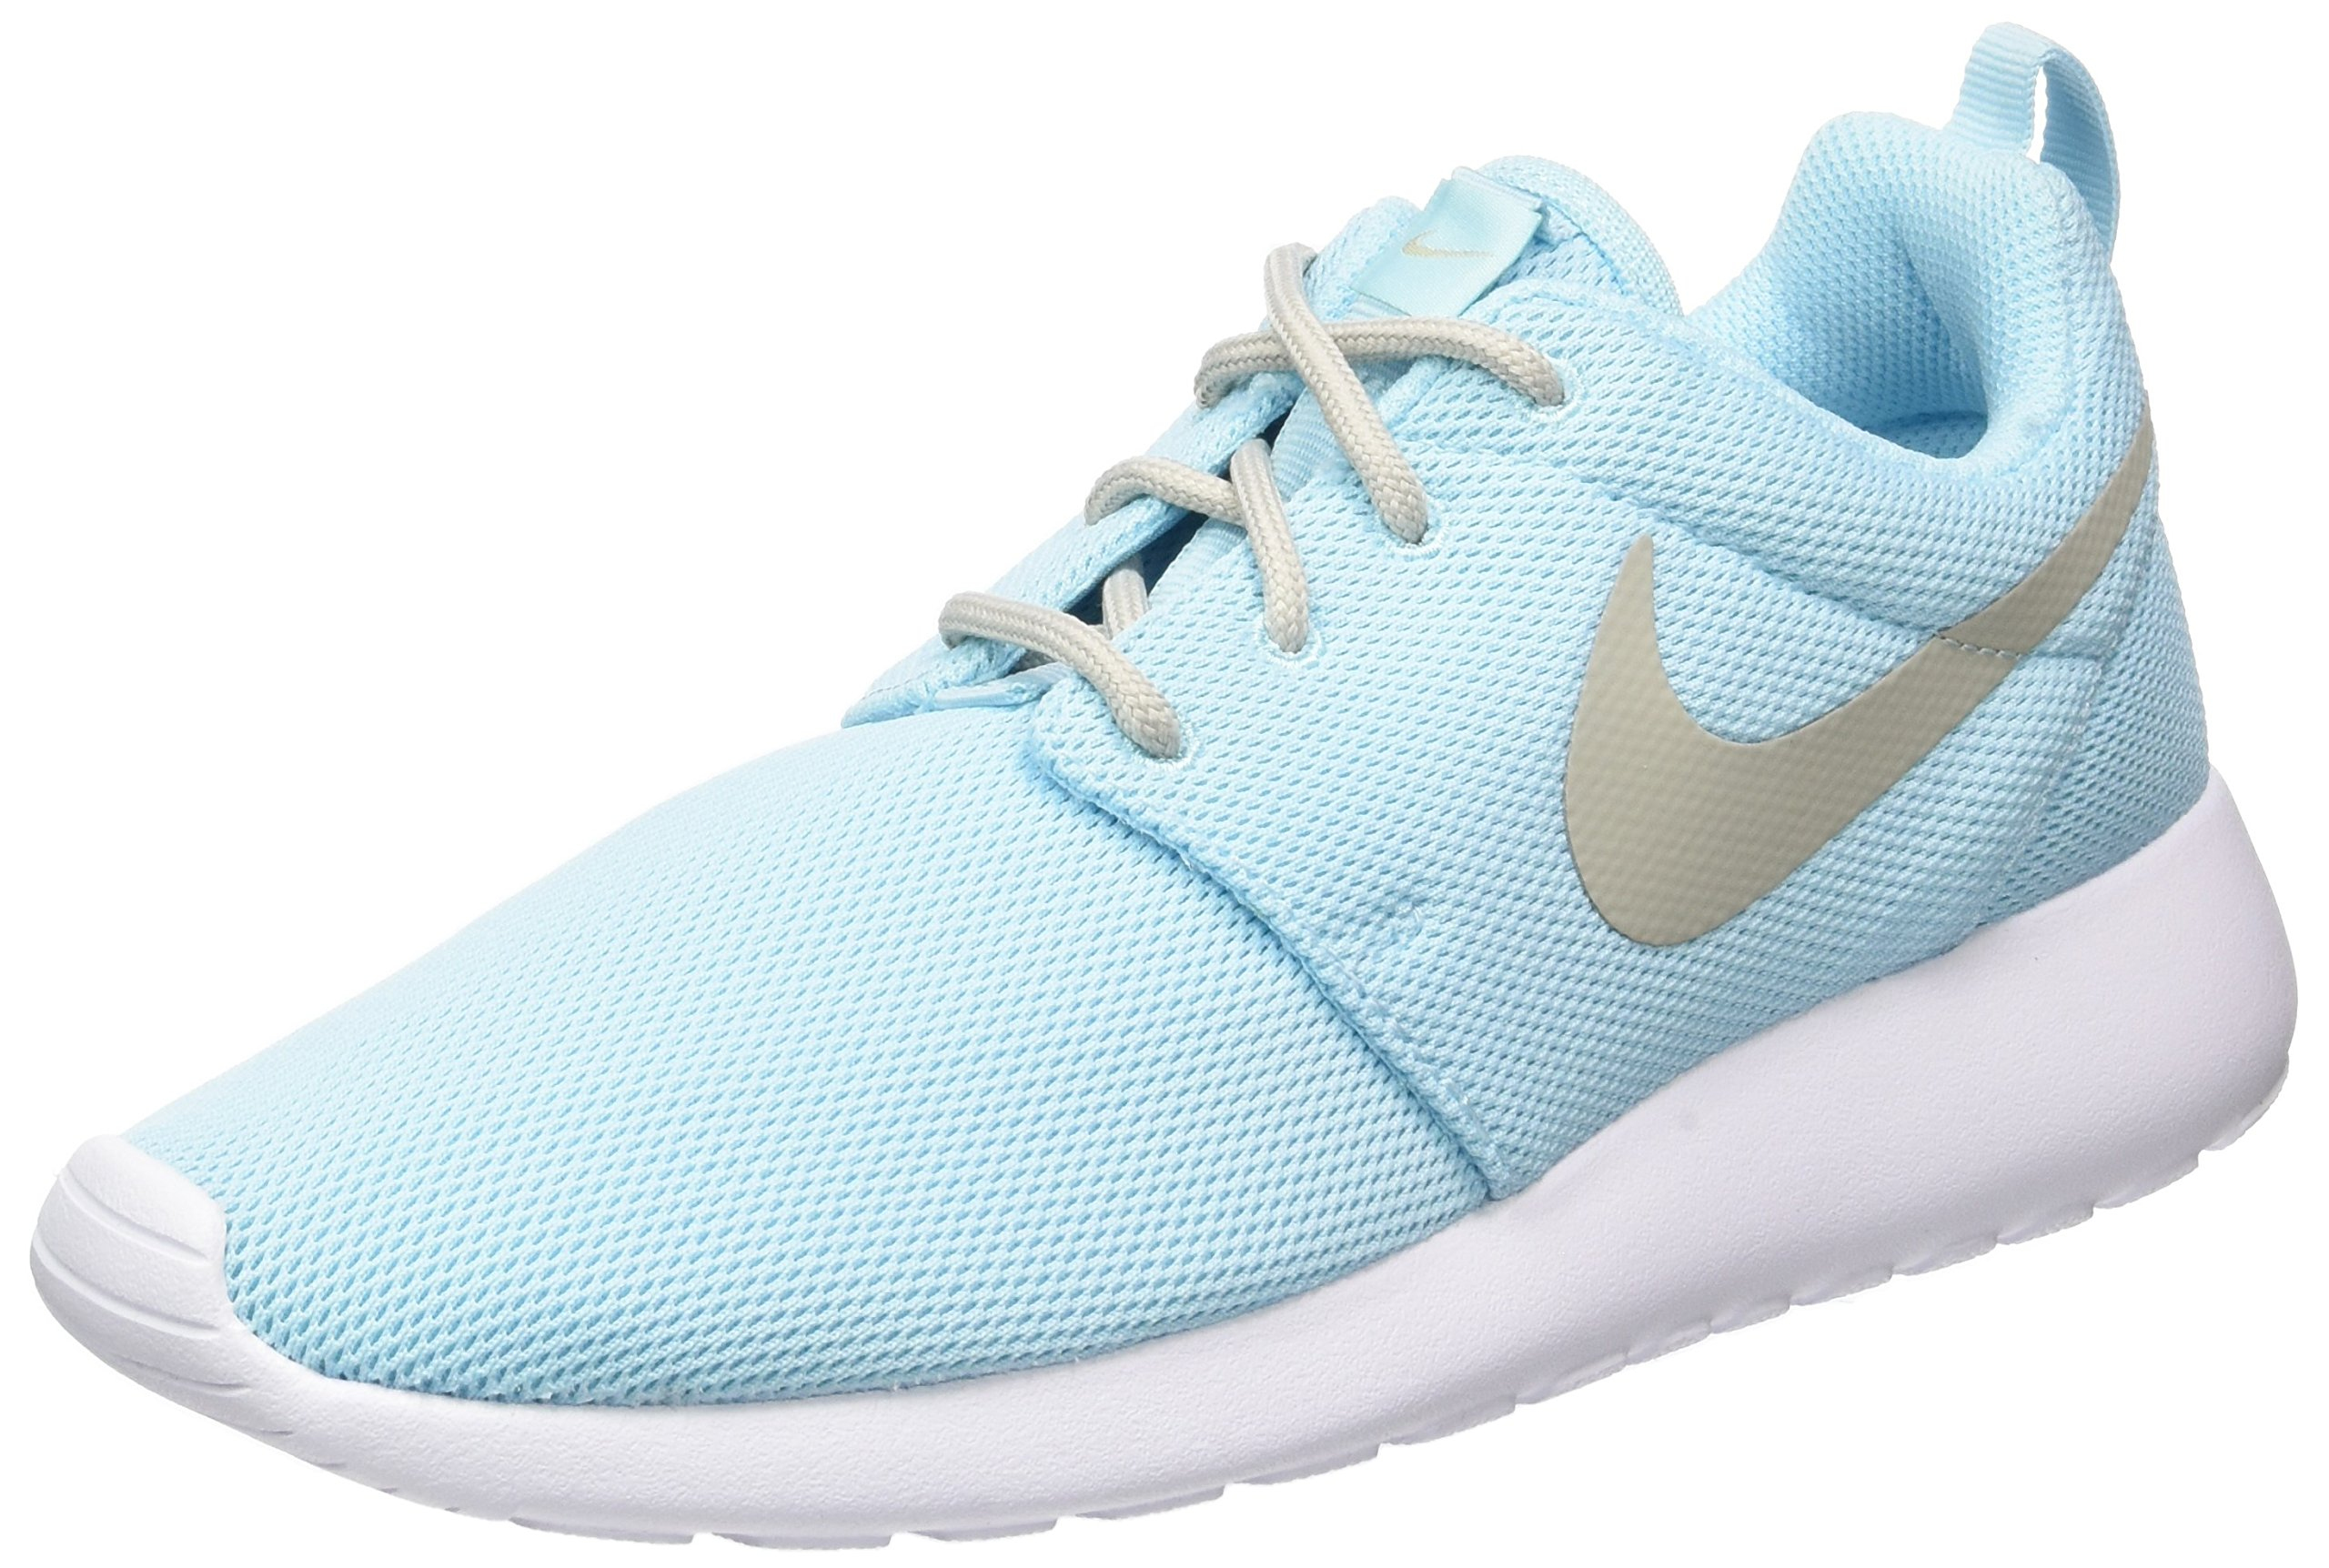 2c8a953b0487 Galleon - Nike Women  s Roshe One Low-Top Sneakers